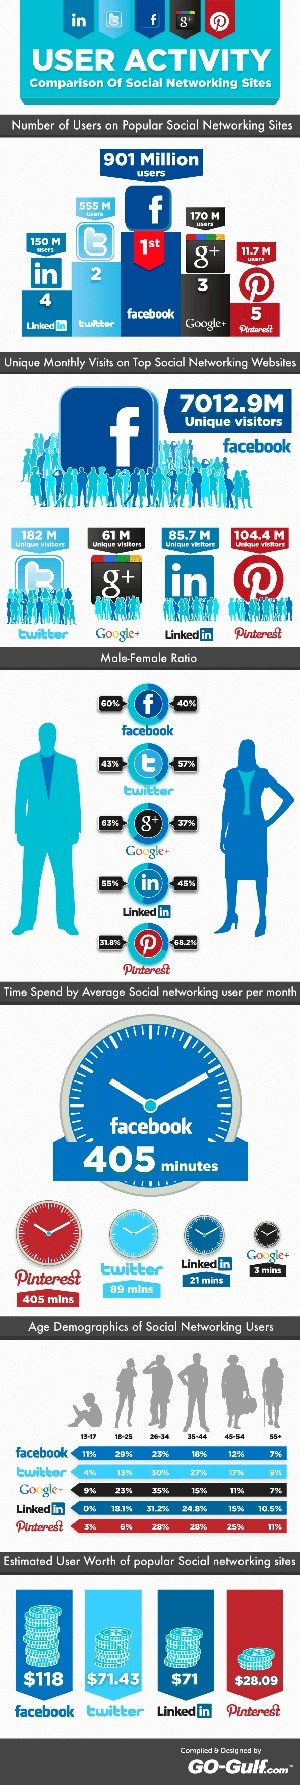 User activity: A Comparison of Social NetworkingSites…05.15.12 | Information for sharing | Scoop.it